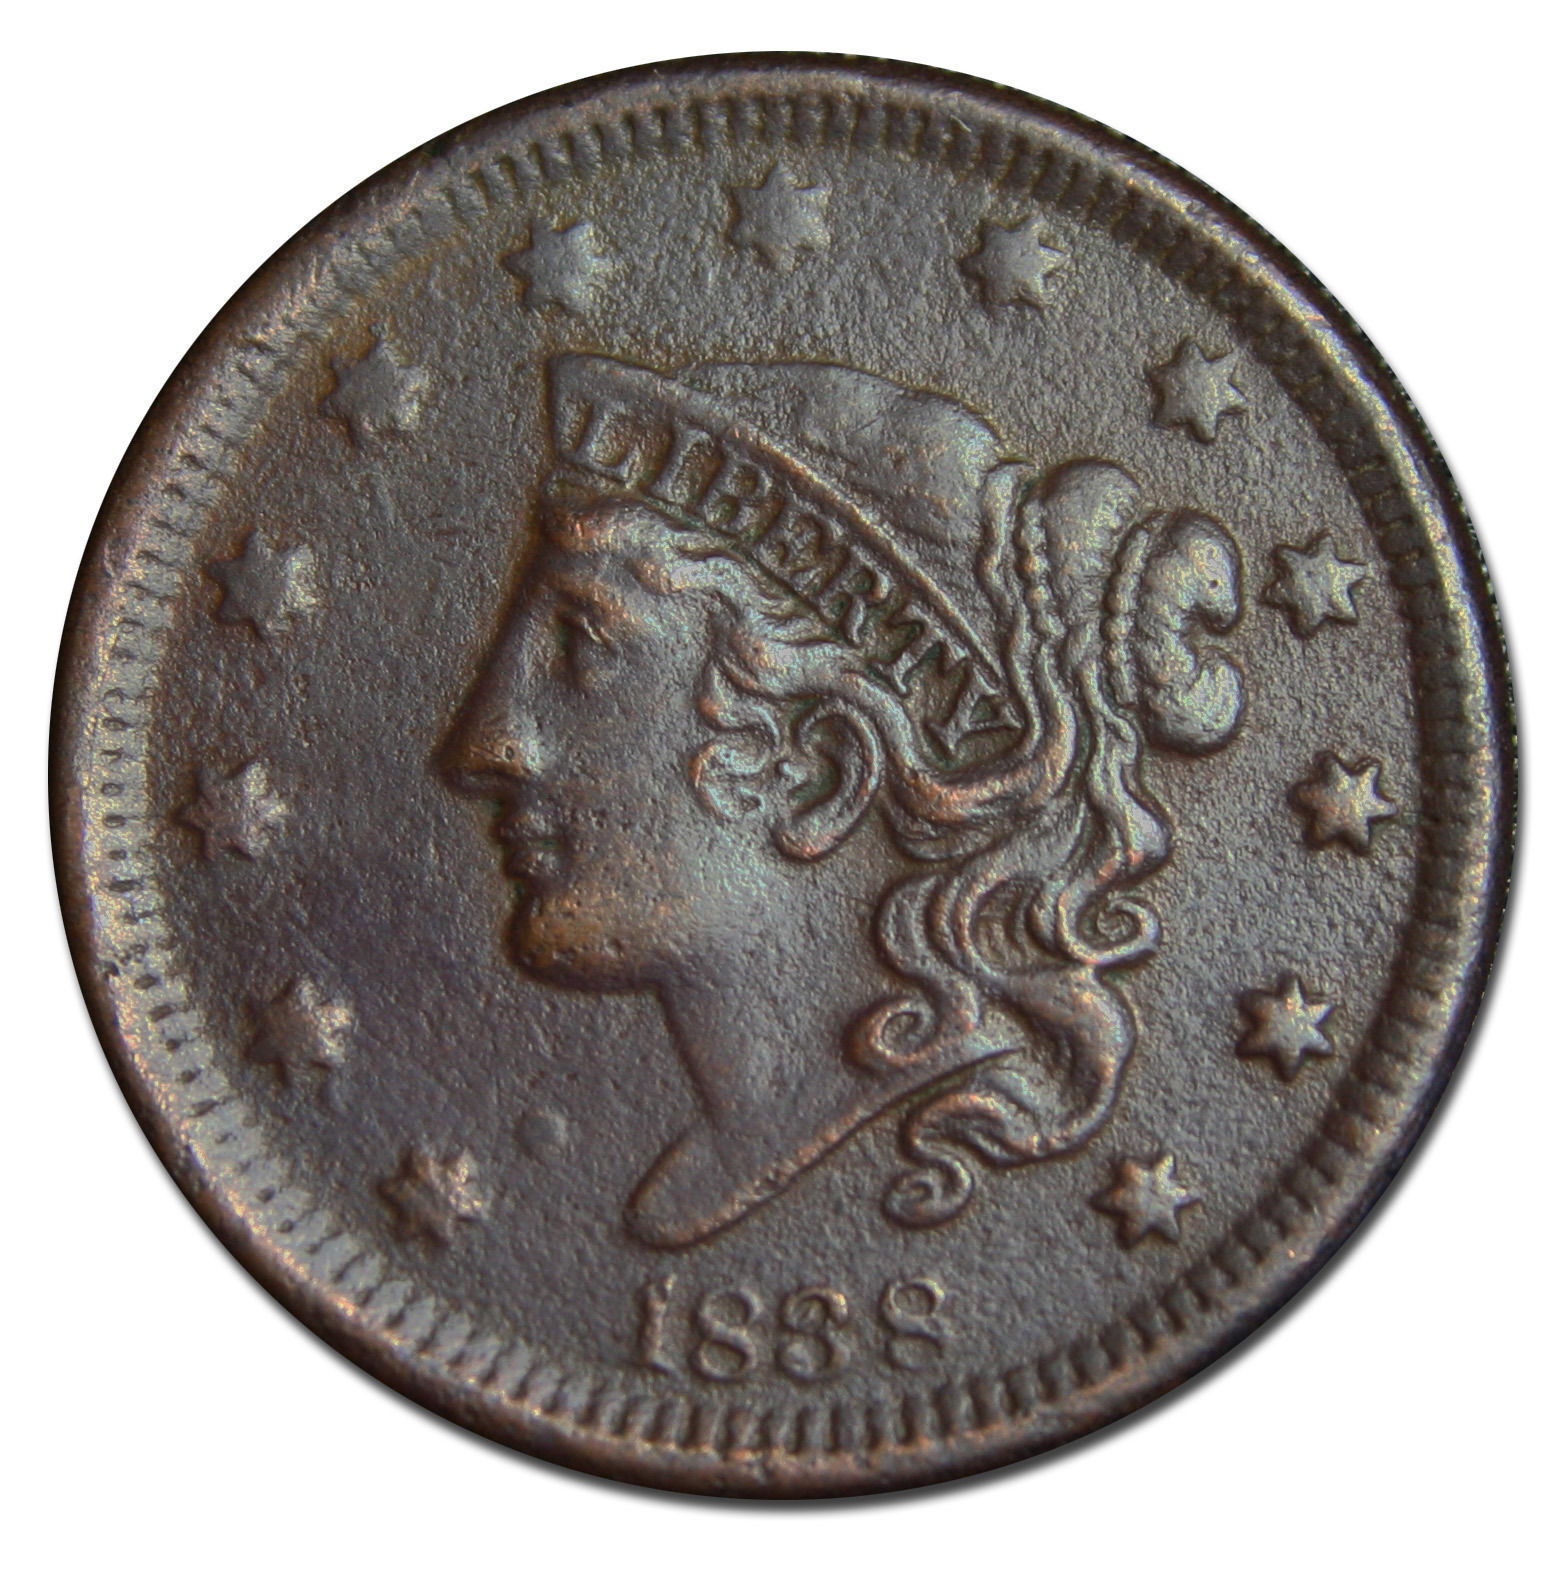 1838 Large Cent Liberty Coronet Head Coin Lot # MZ 2950